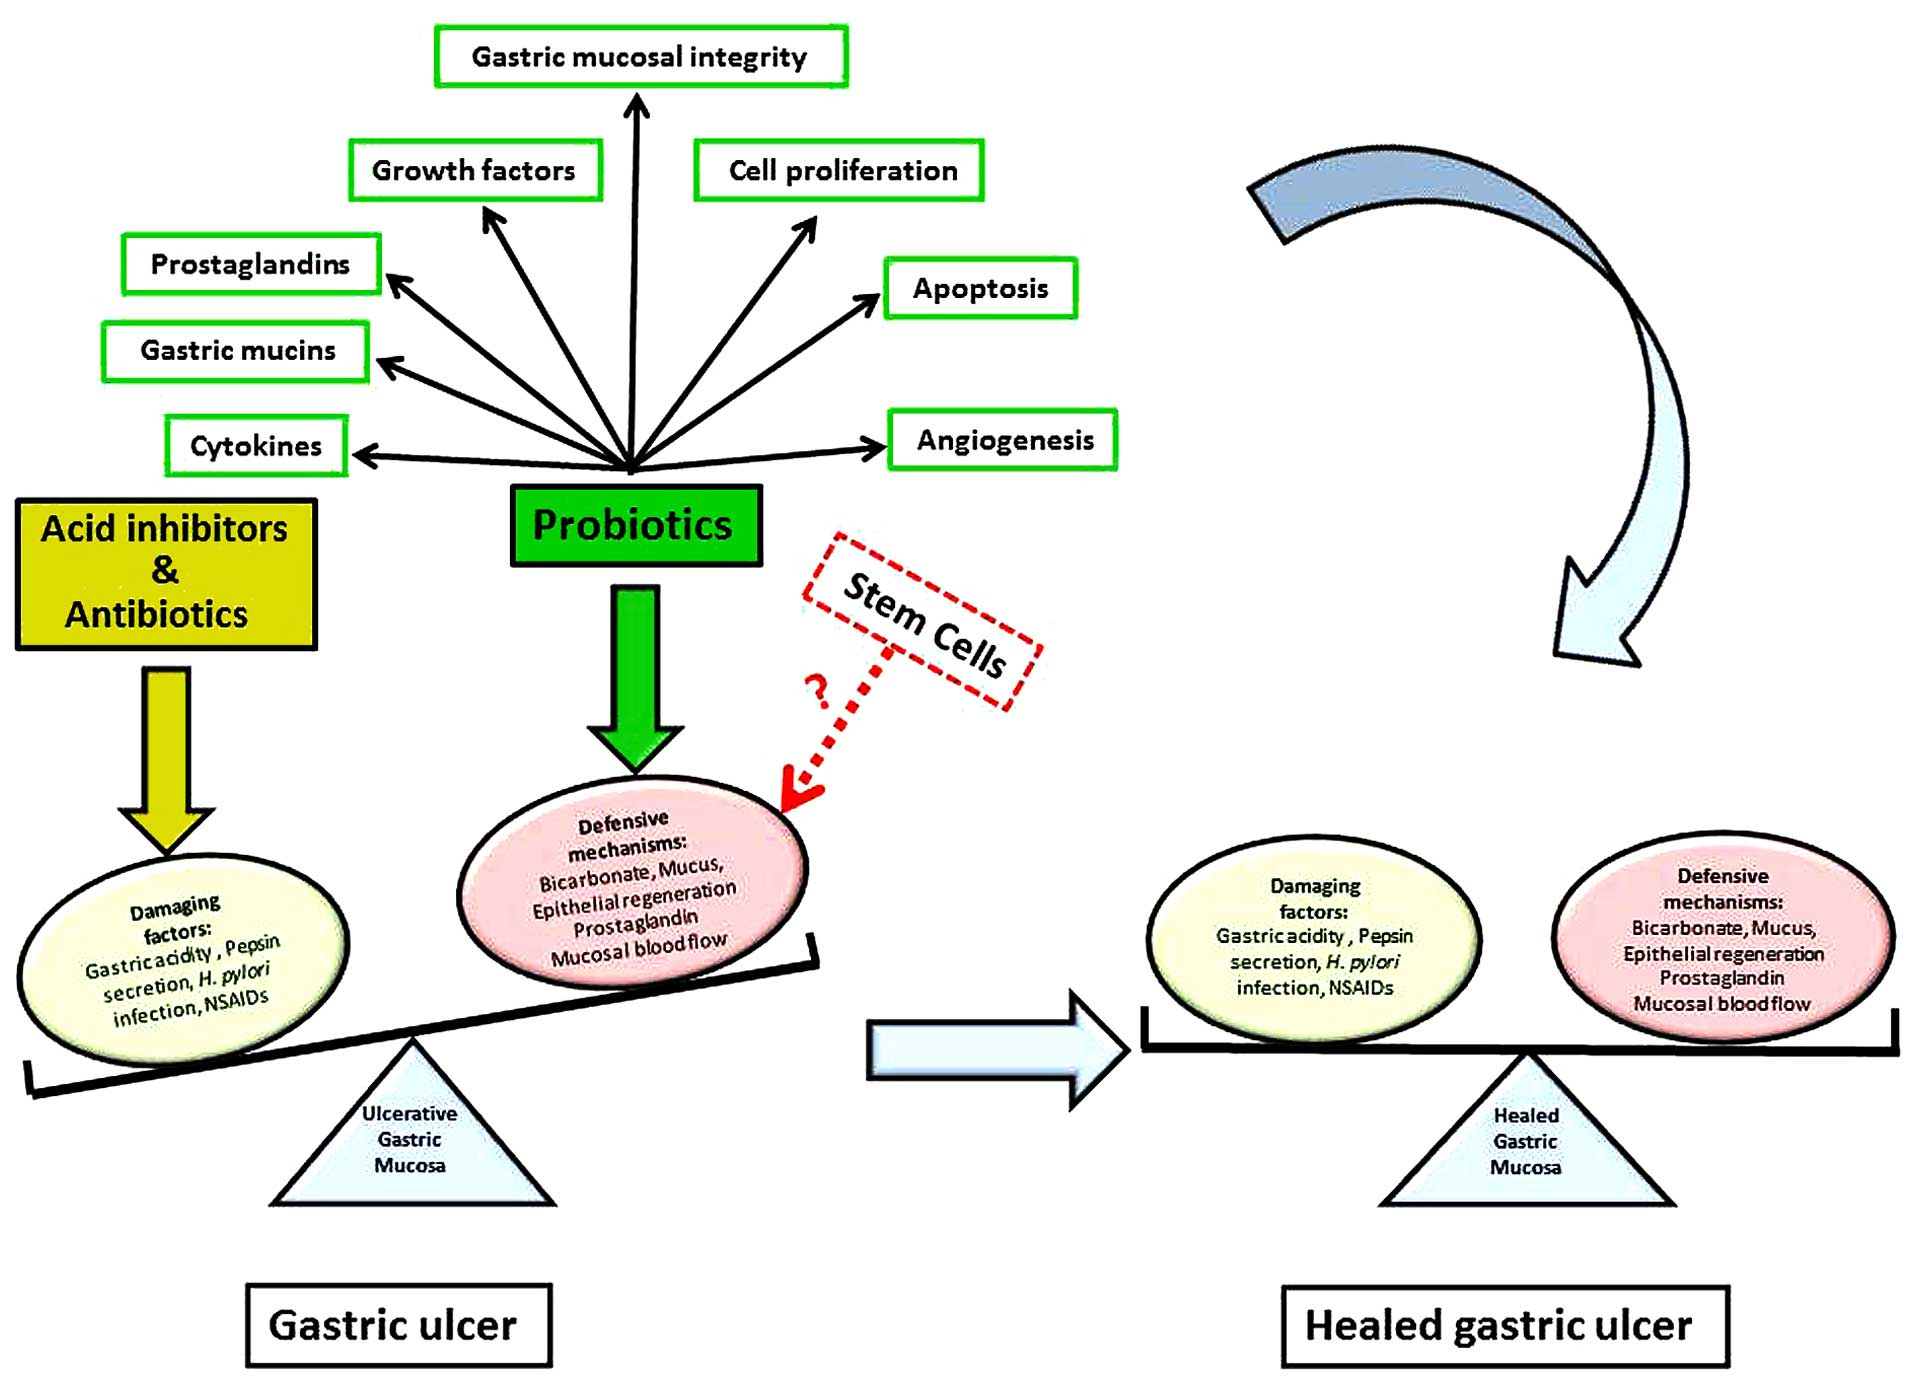 Potential role of probiotics in the management of gastric ulcer ...